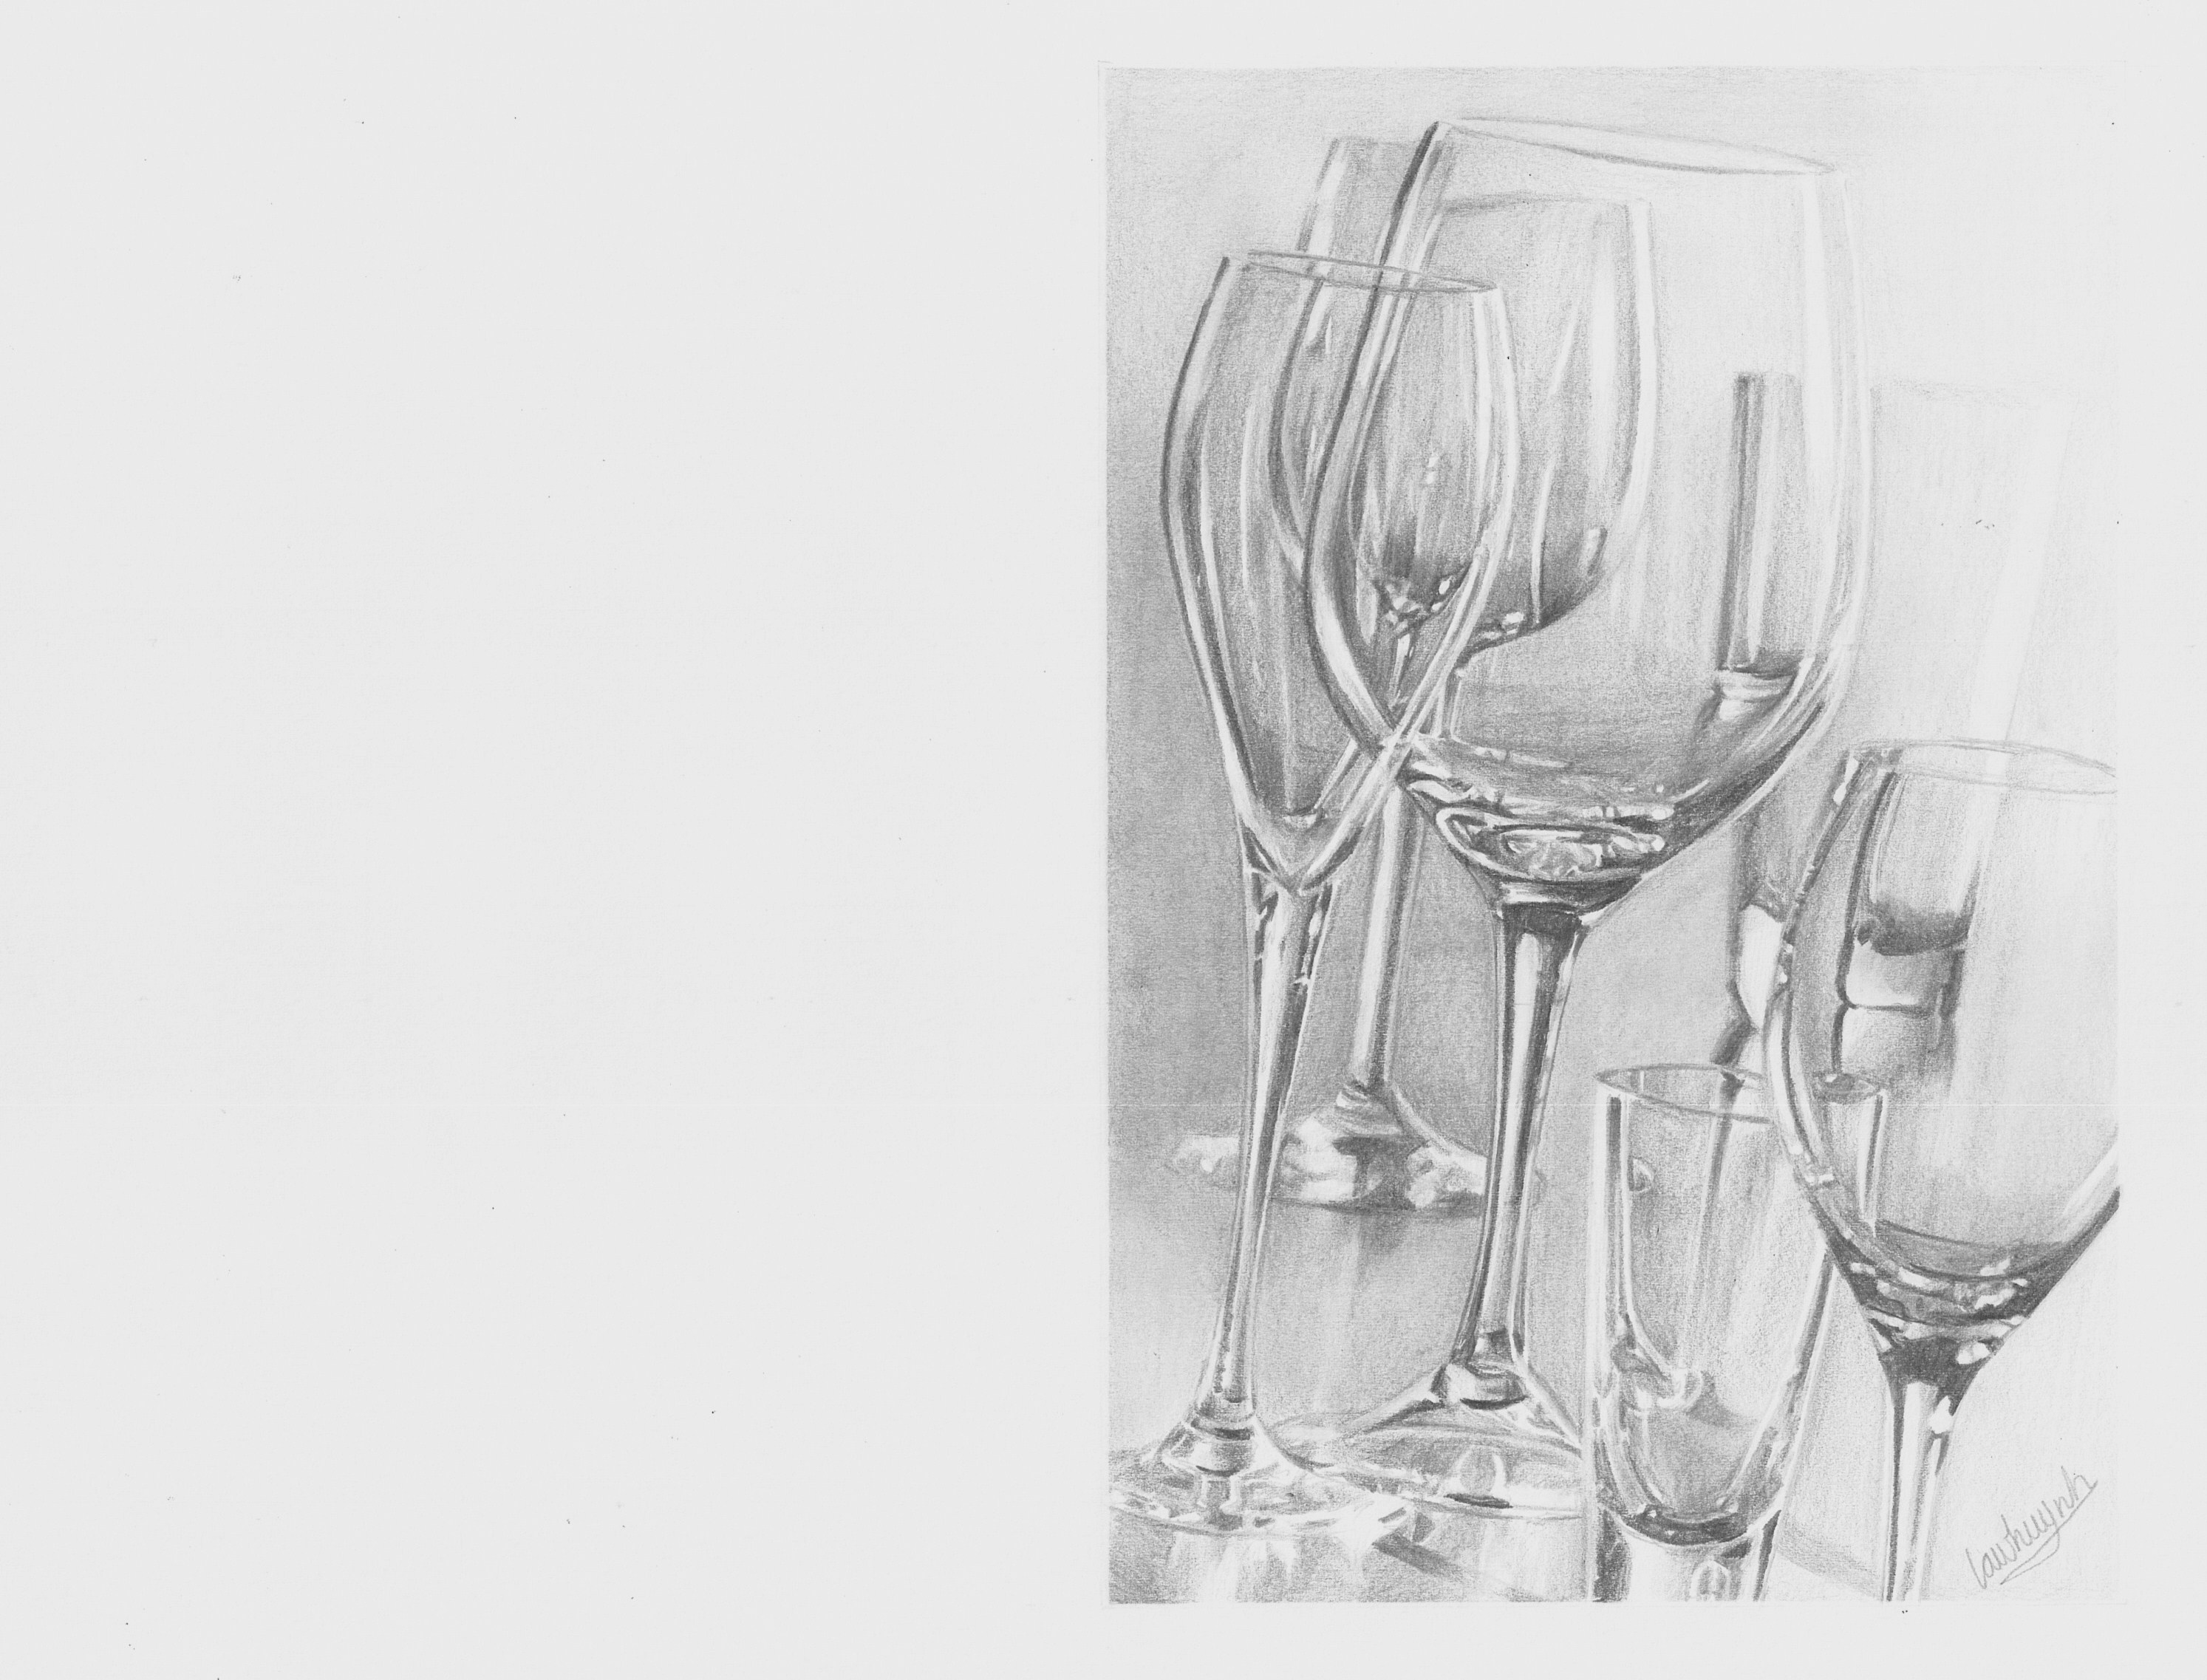 Wine glasses by law3208 on deviantart for How to draw on wine glasses